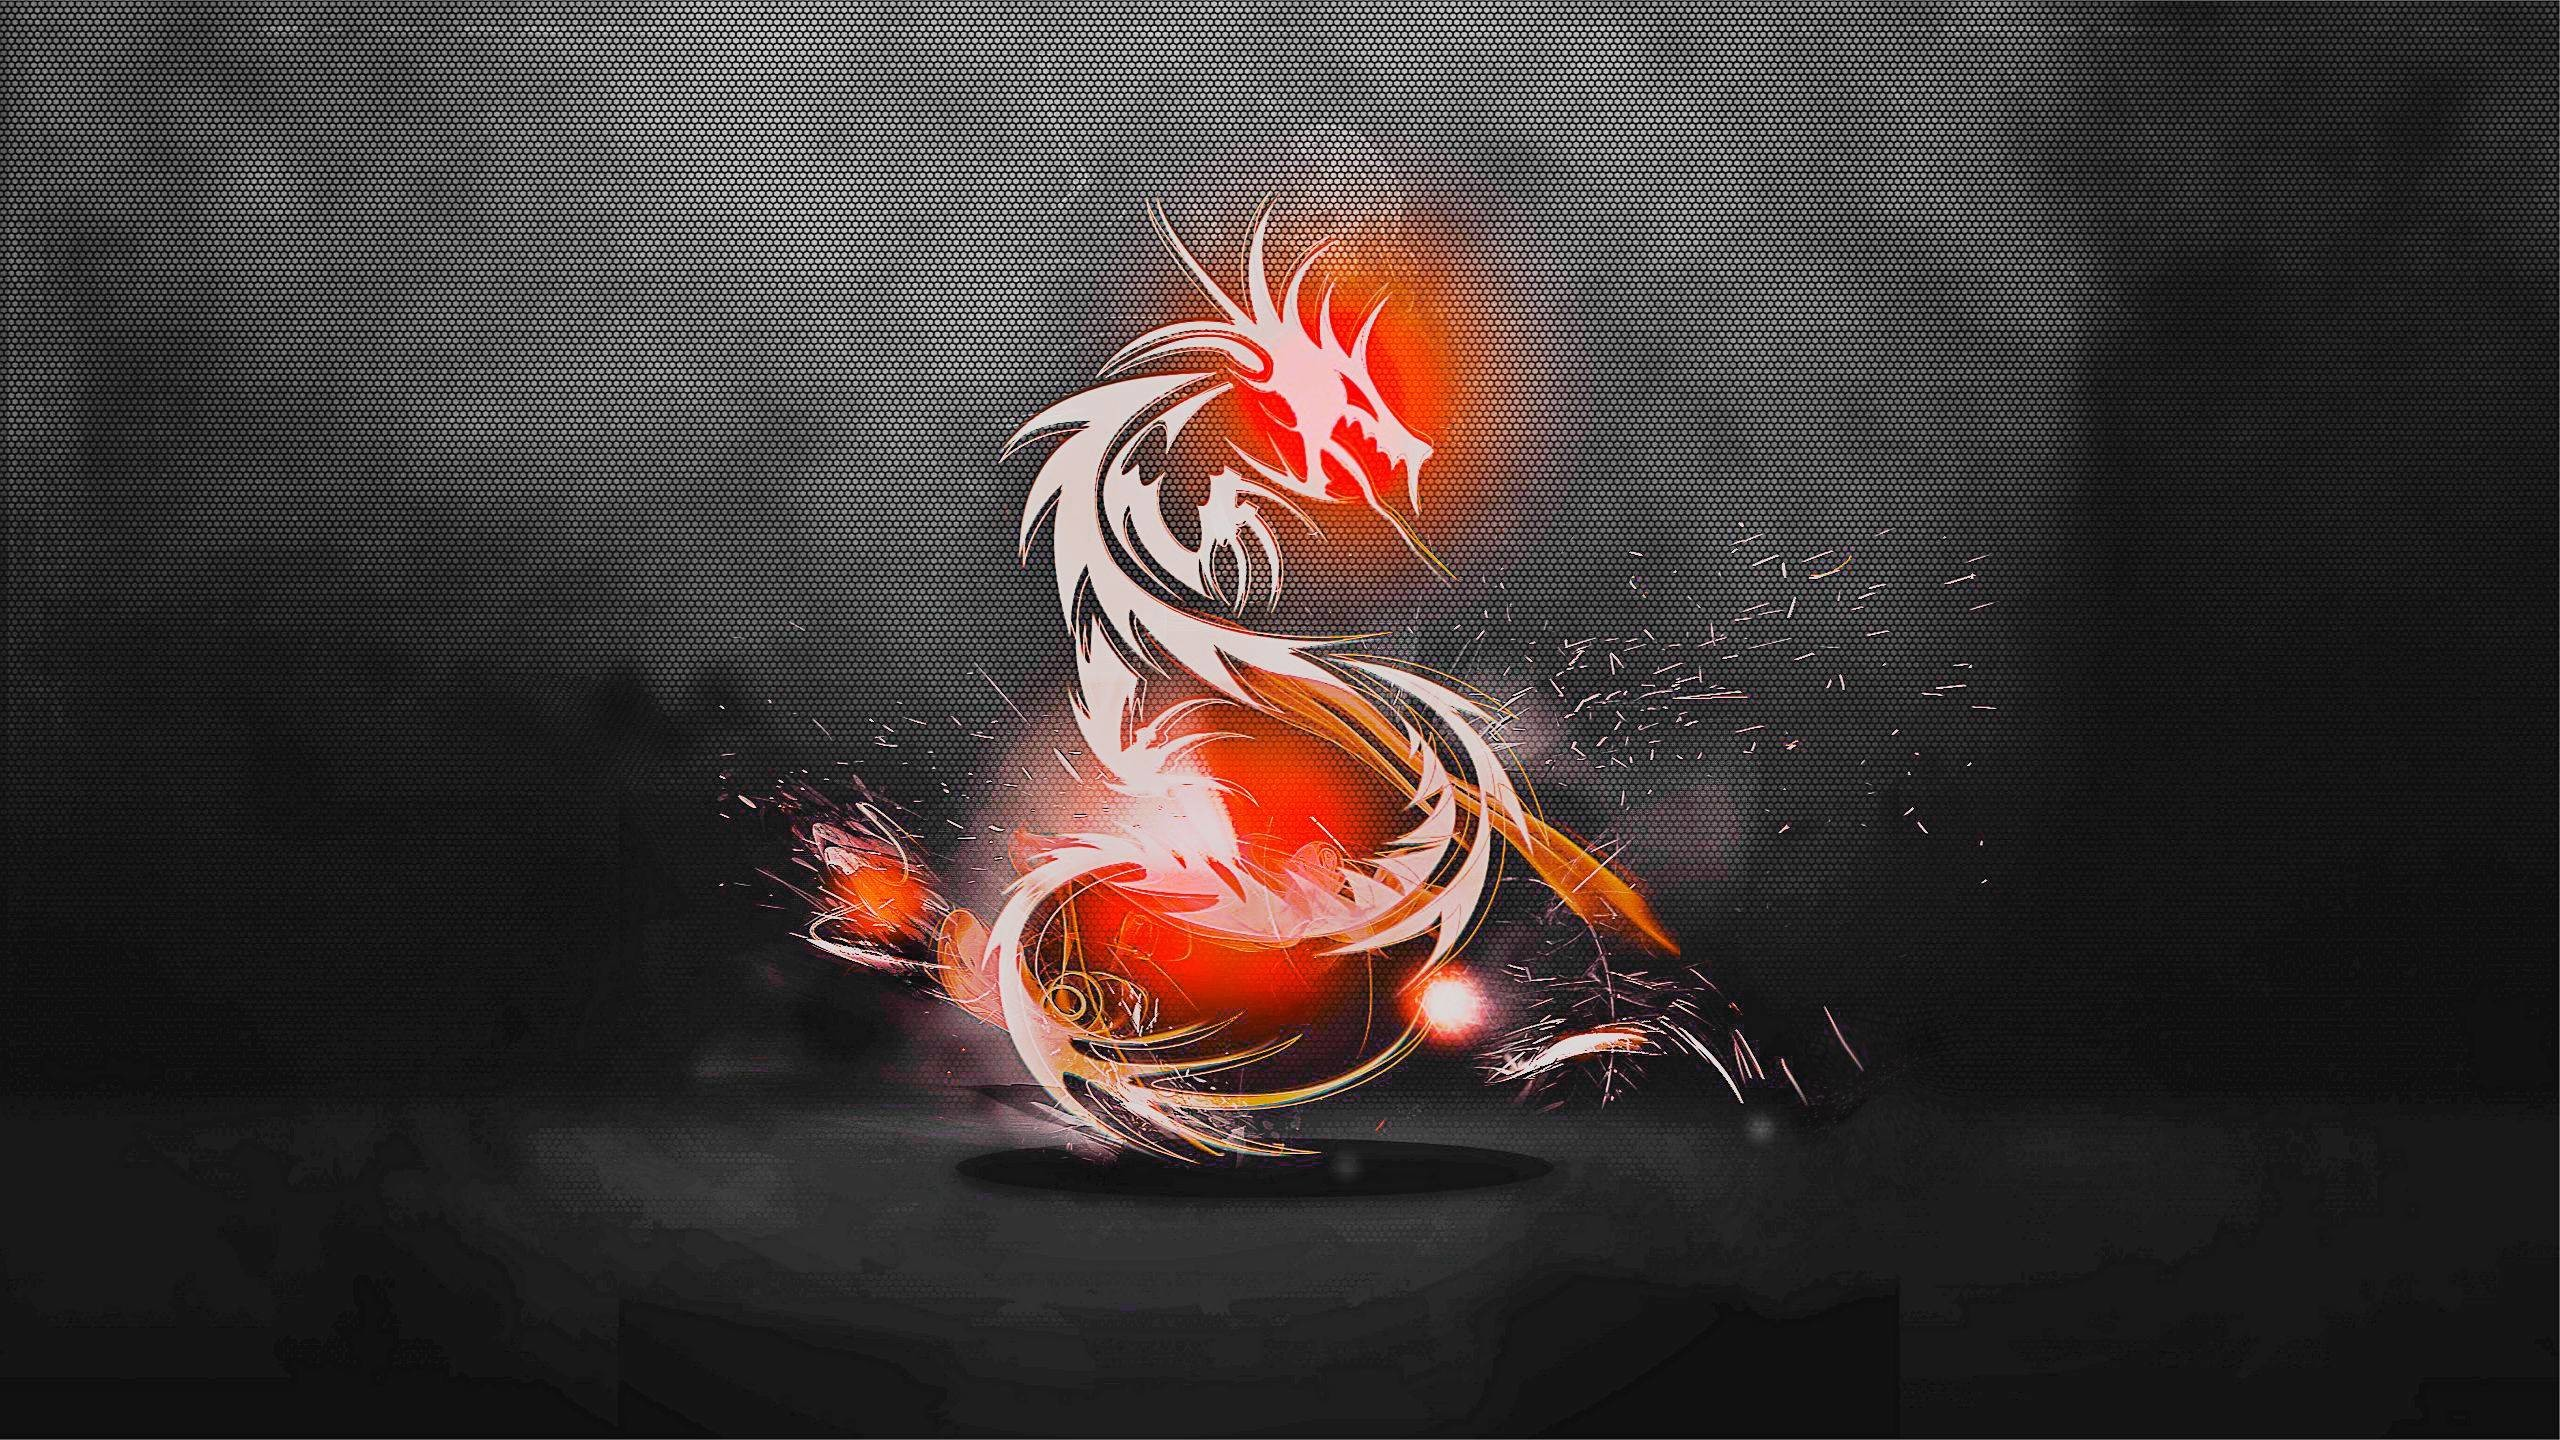 2560x1440 Tag: HD Widescreen Red Dragon Wallpapers, Backgrounds and Pictures for  Free, Lilli Tackett